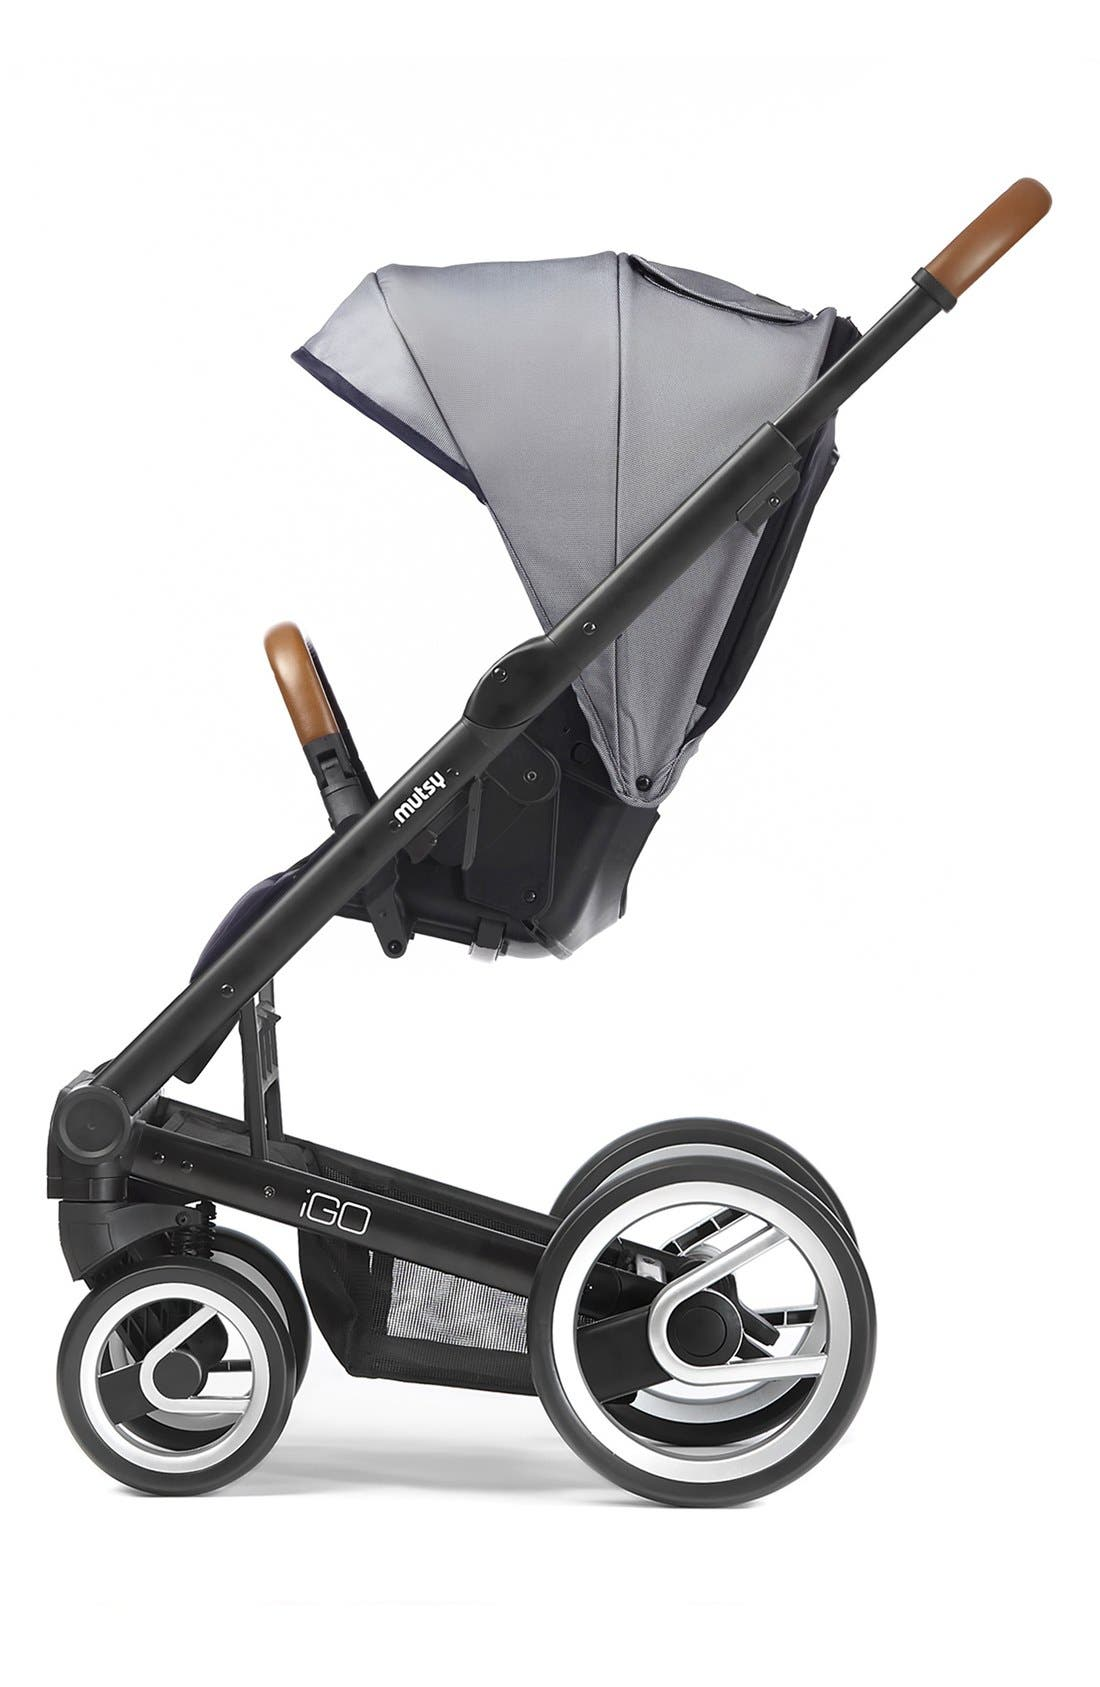 Igo - Urban Nomad Stroller,                             Main thumbnail 1, color,                             001